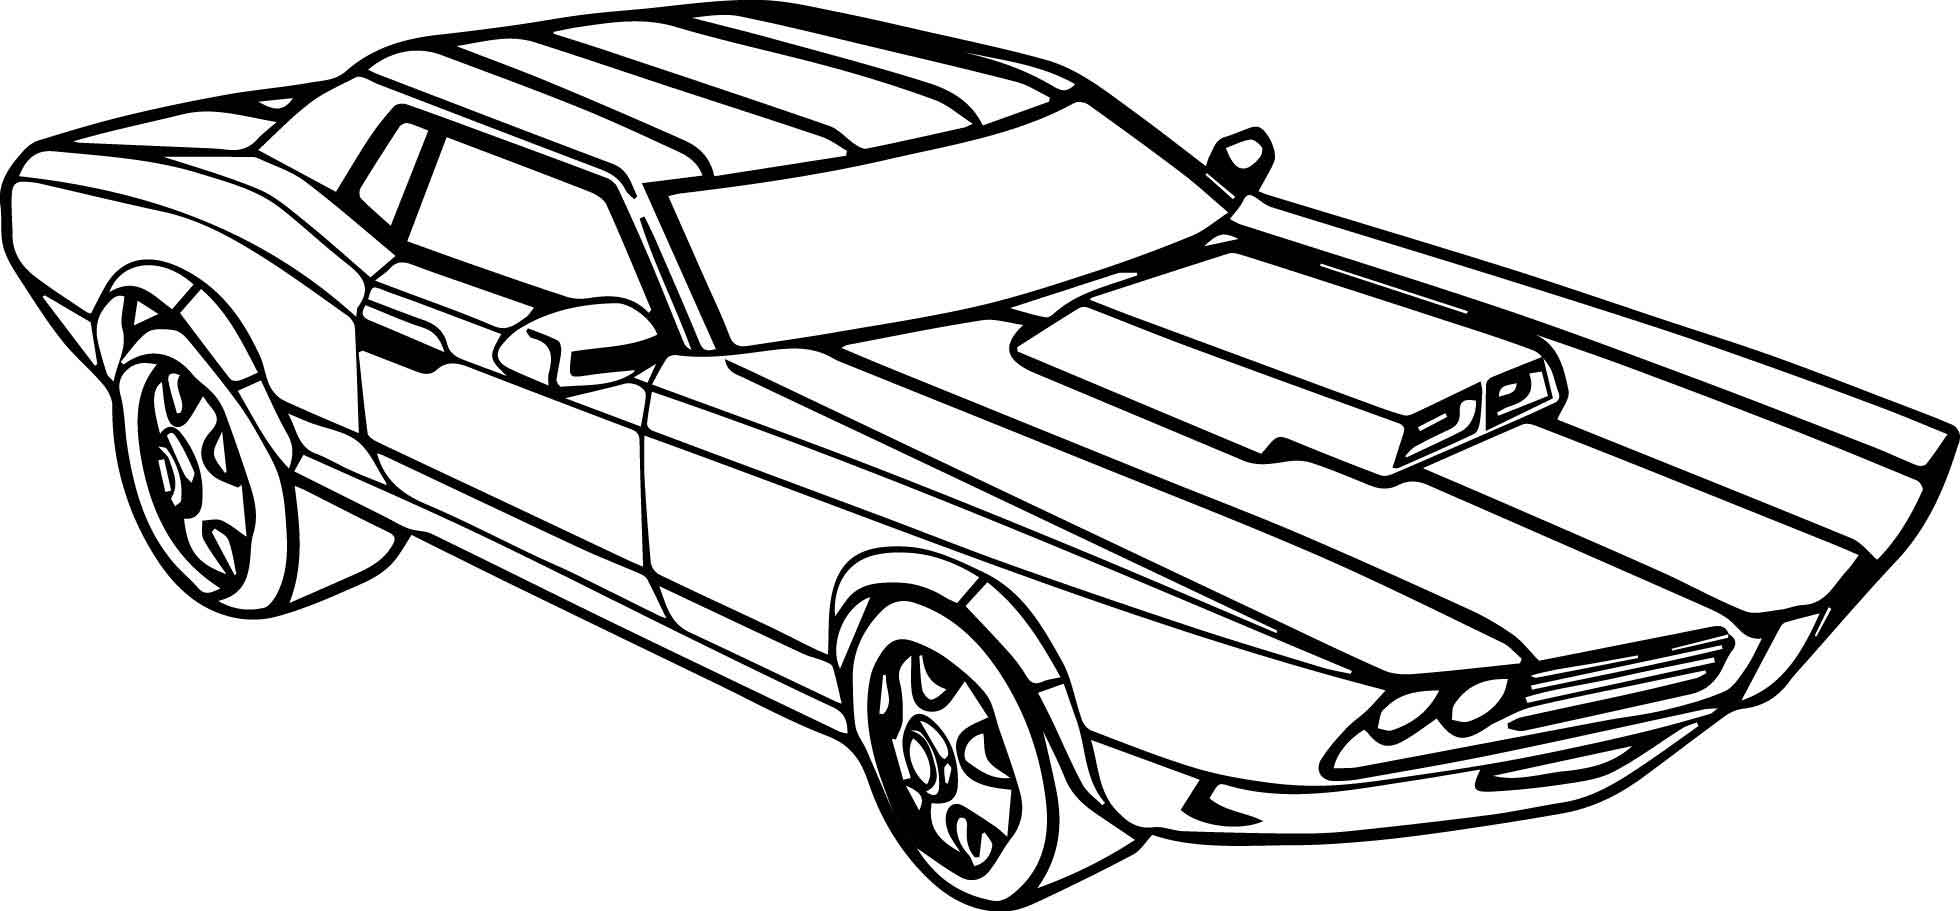 cool car colouring pages coloring blog for kids car colouring cool pages